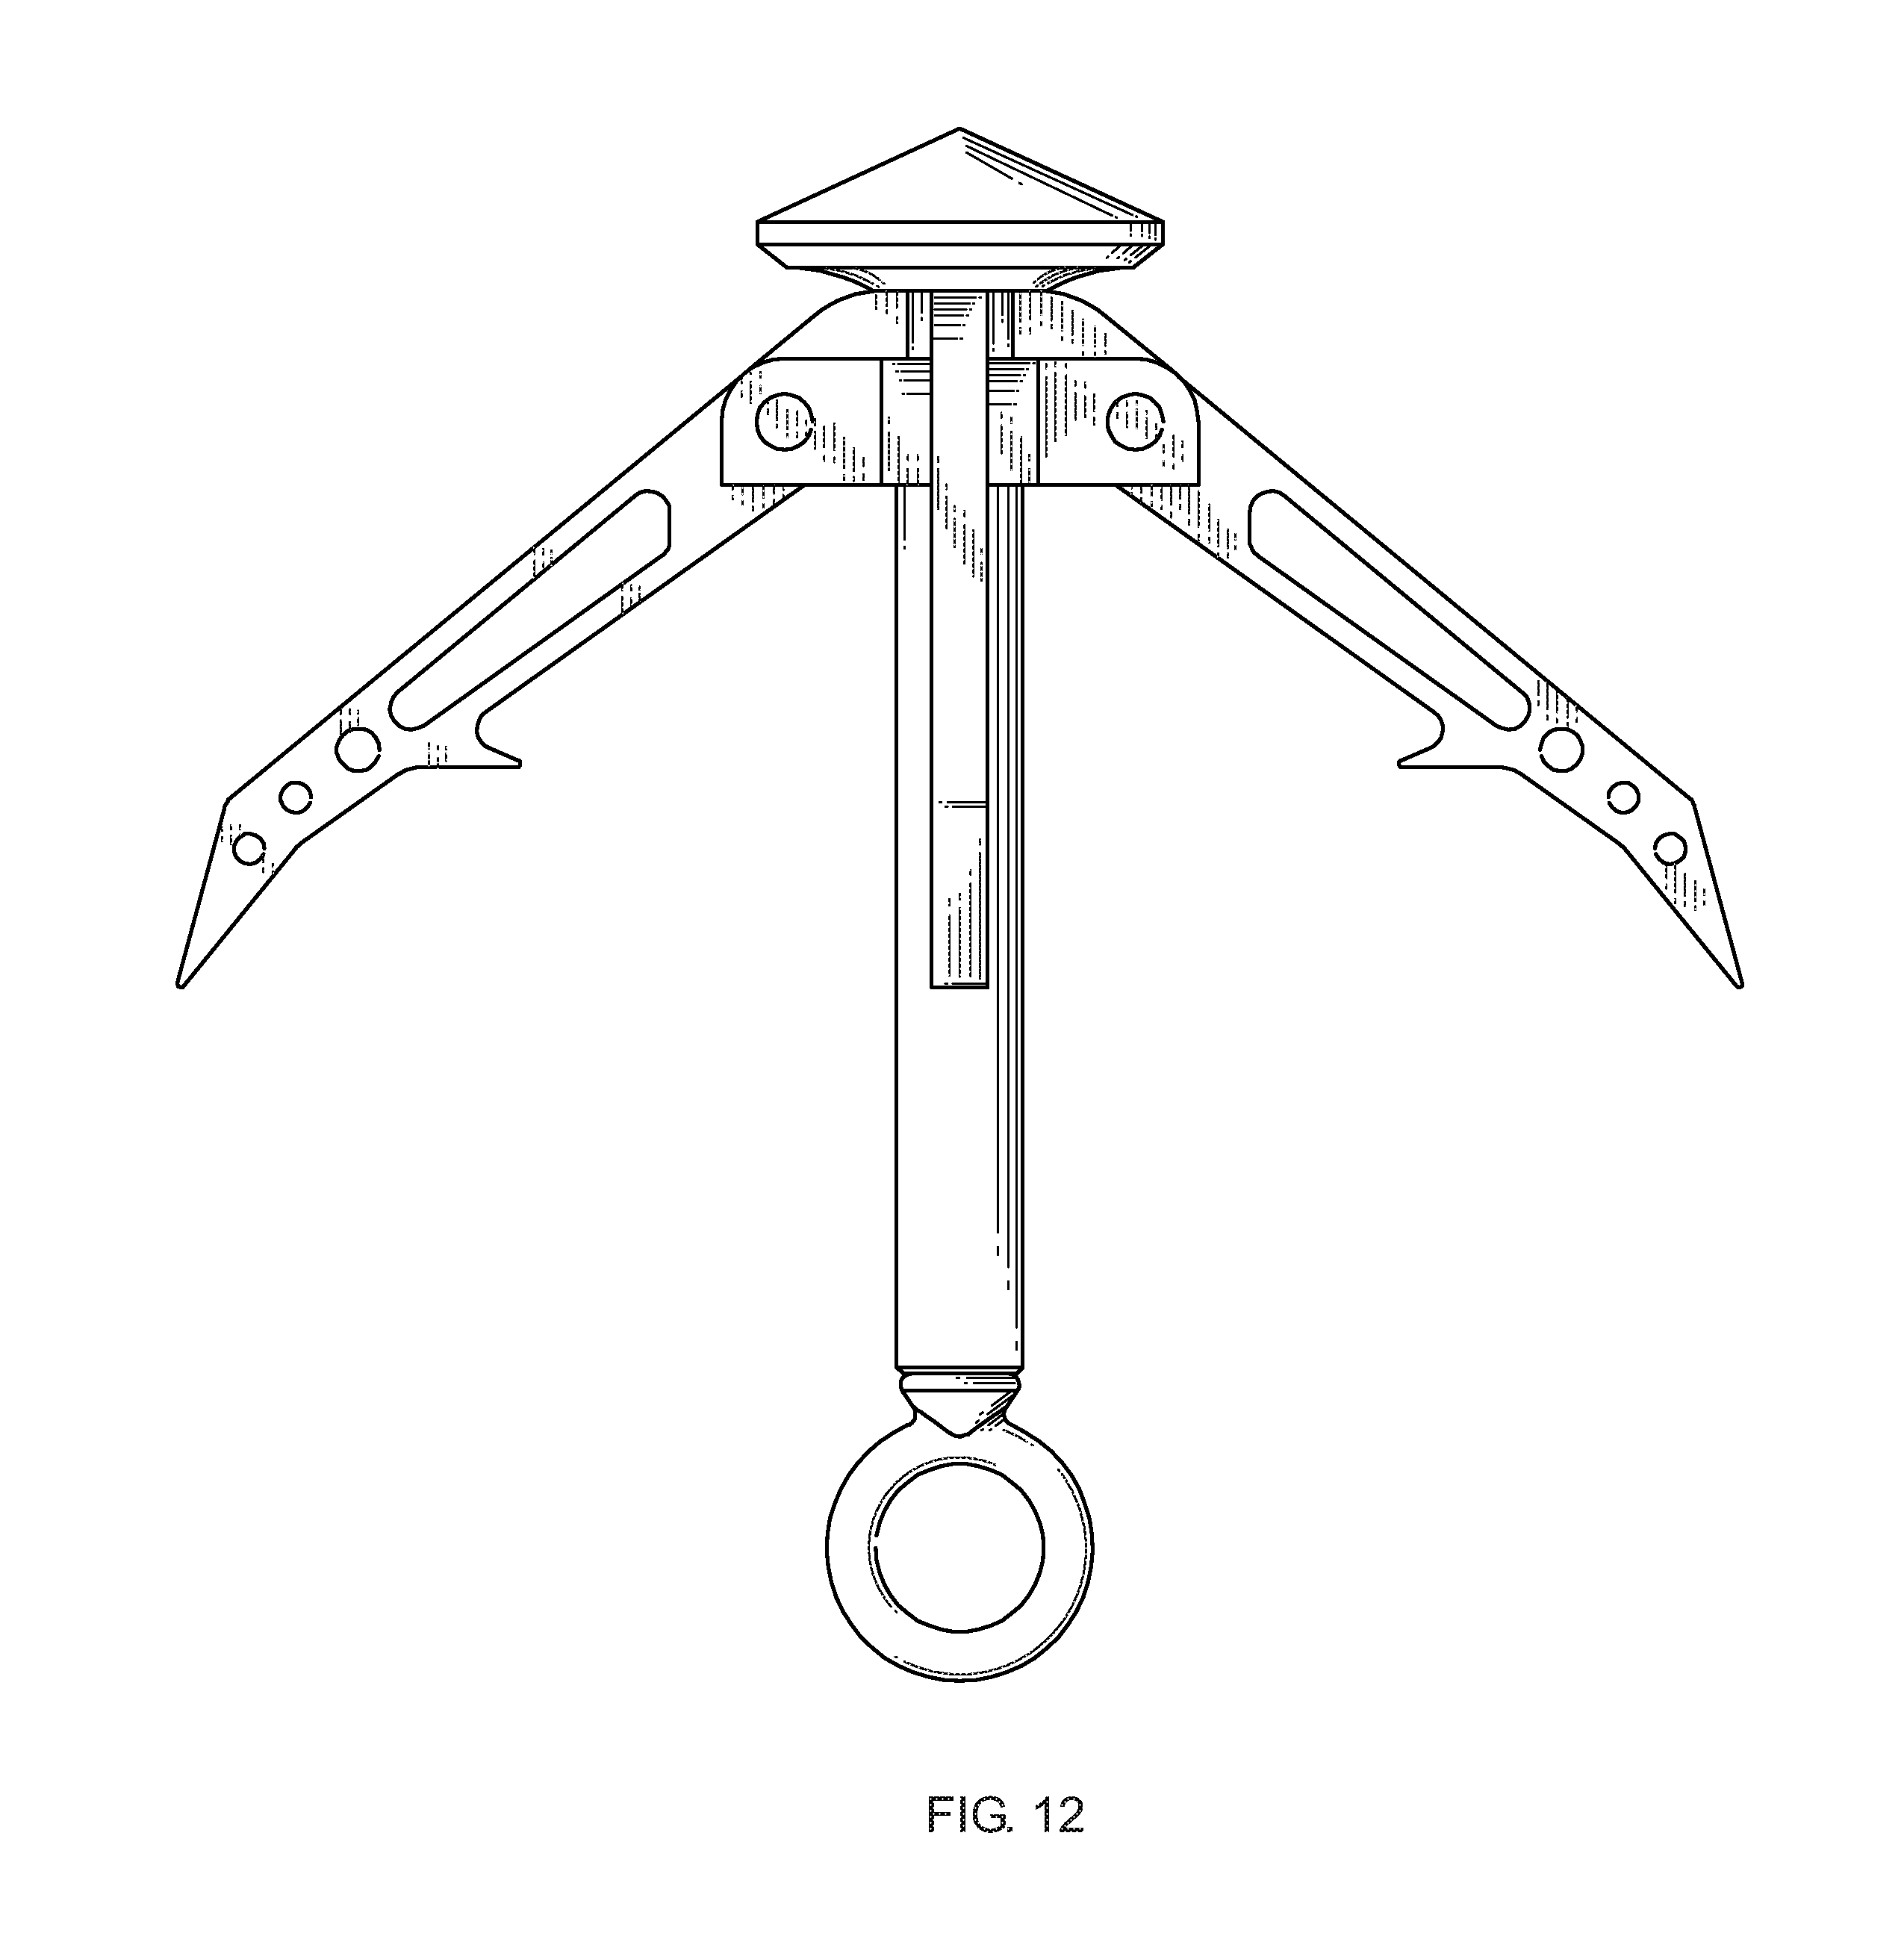 patent us8556313 - multi-configuration grappling hook system